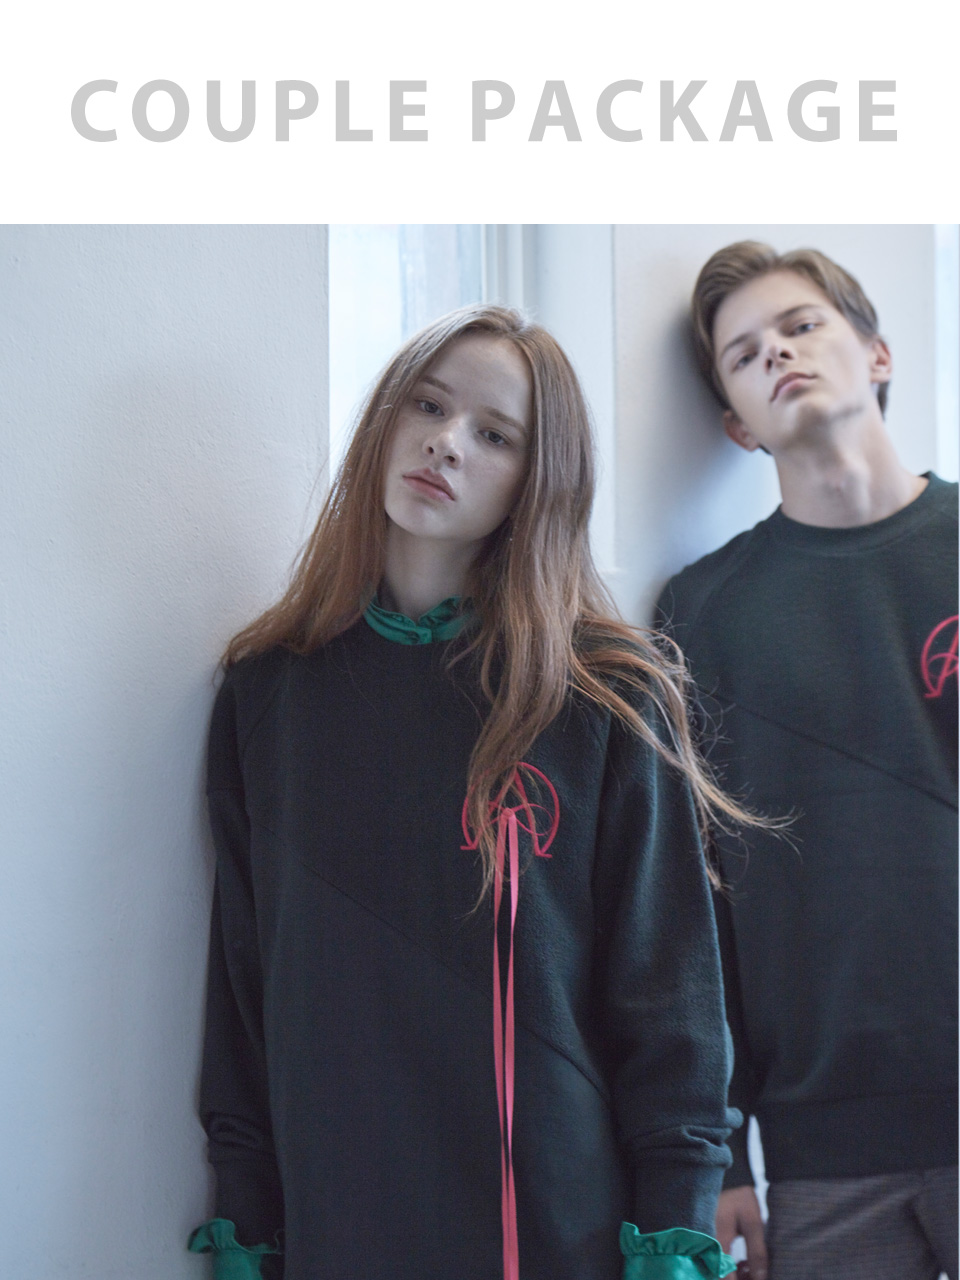 17FW ALPHA OMEGA SWEATSHIRT_COUPLE PACKAGE